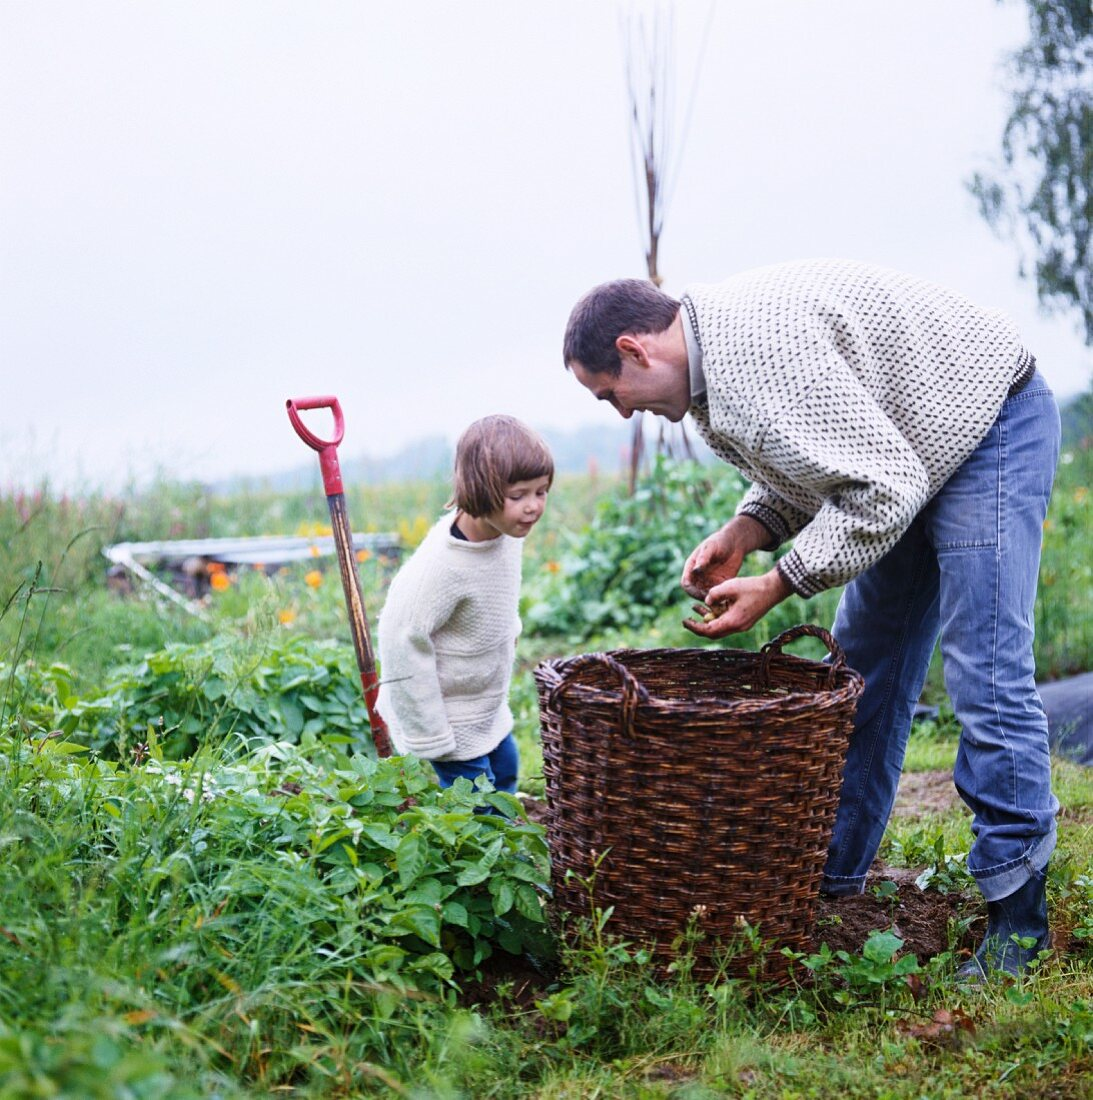 Father and daughter harvesting potatoes in garden